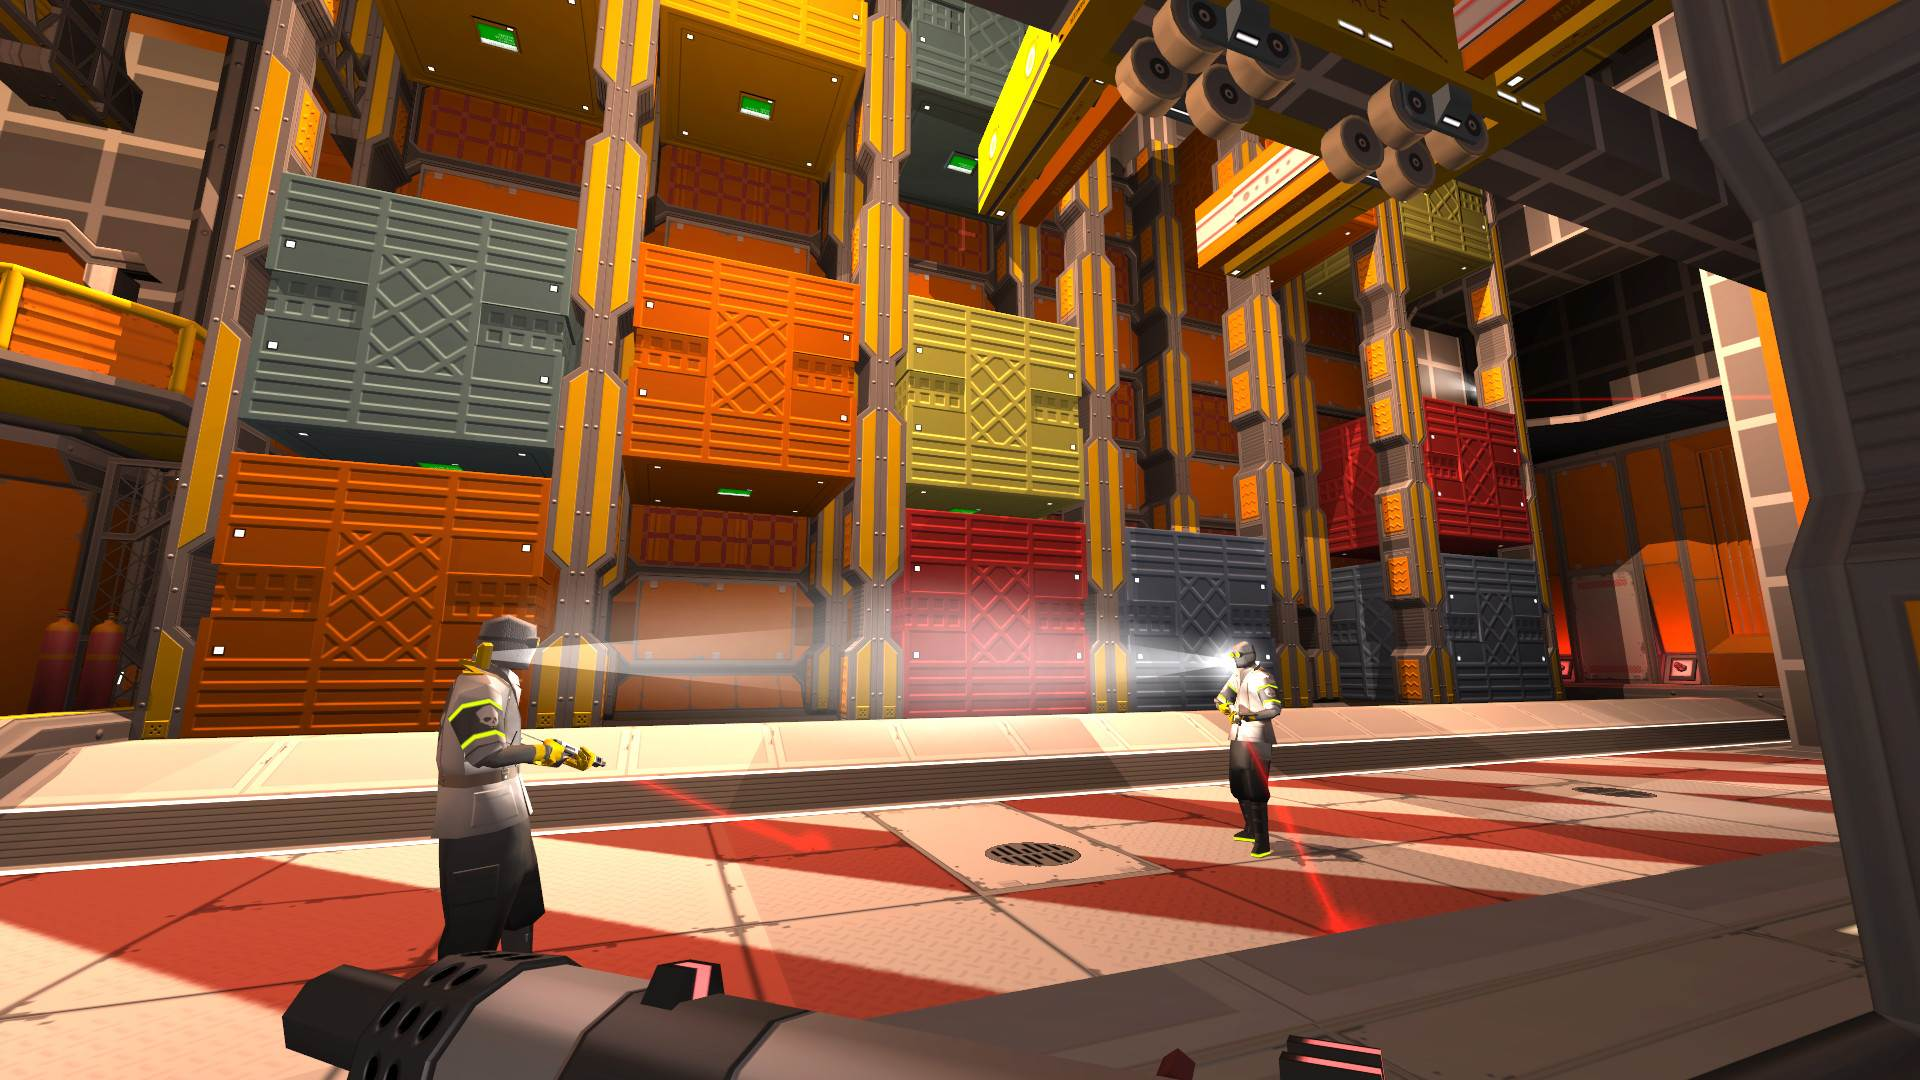 Blendo Games partners with Annapurna for its immersive space FPS Skin Deep screenshot